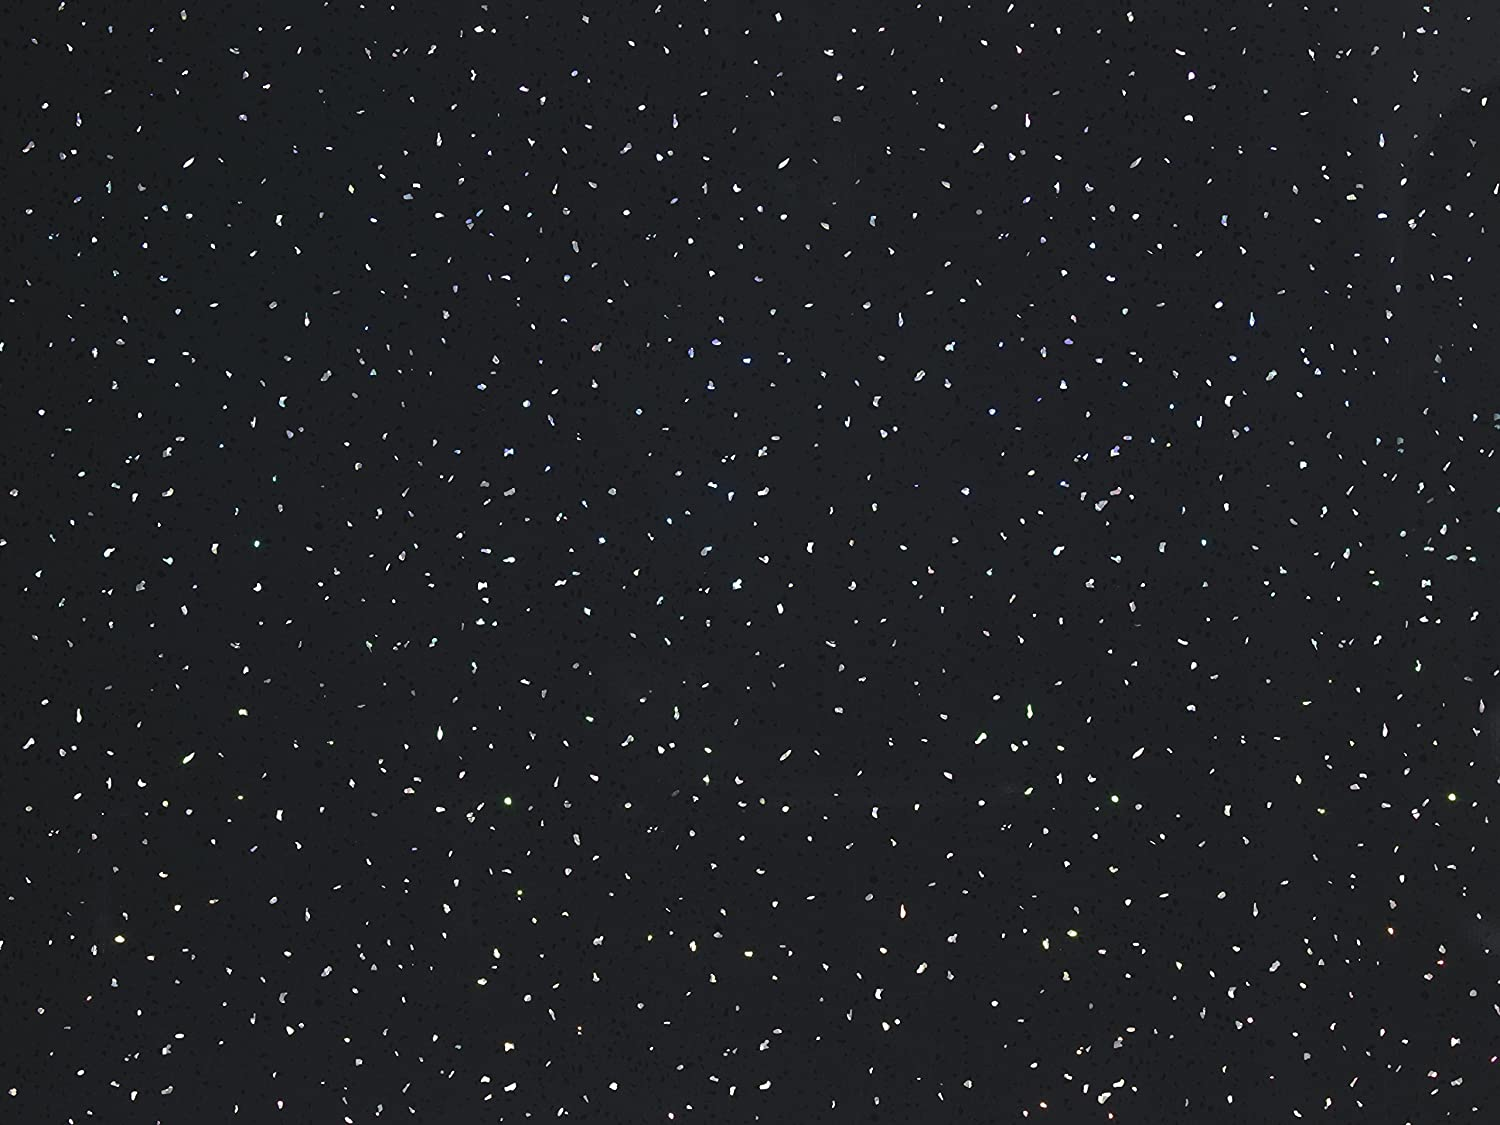 Black Sparkle 1m x 2.4m Shower Wall Panels Bathroom PVC Cladding Wet Wall By DBS